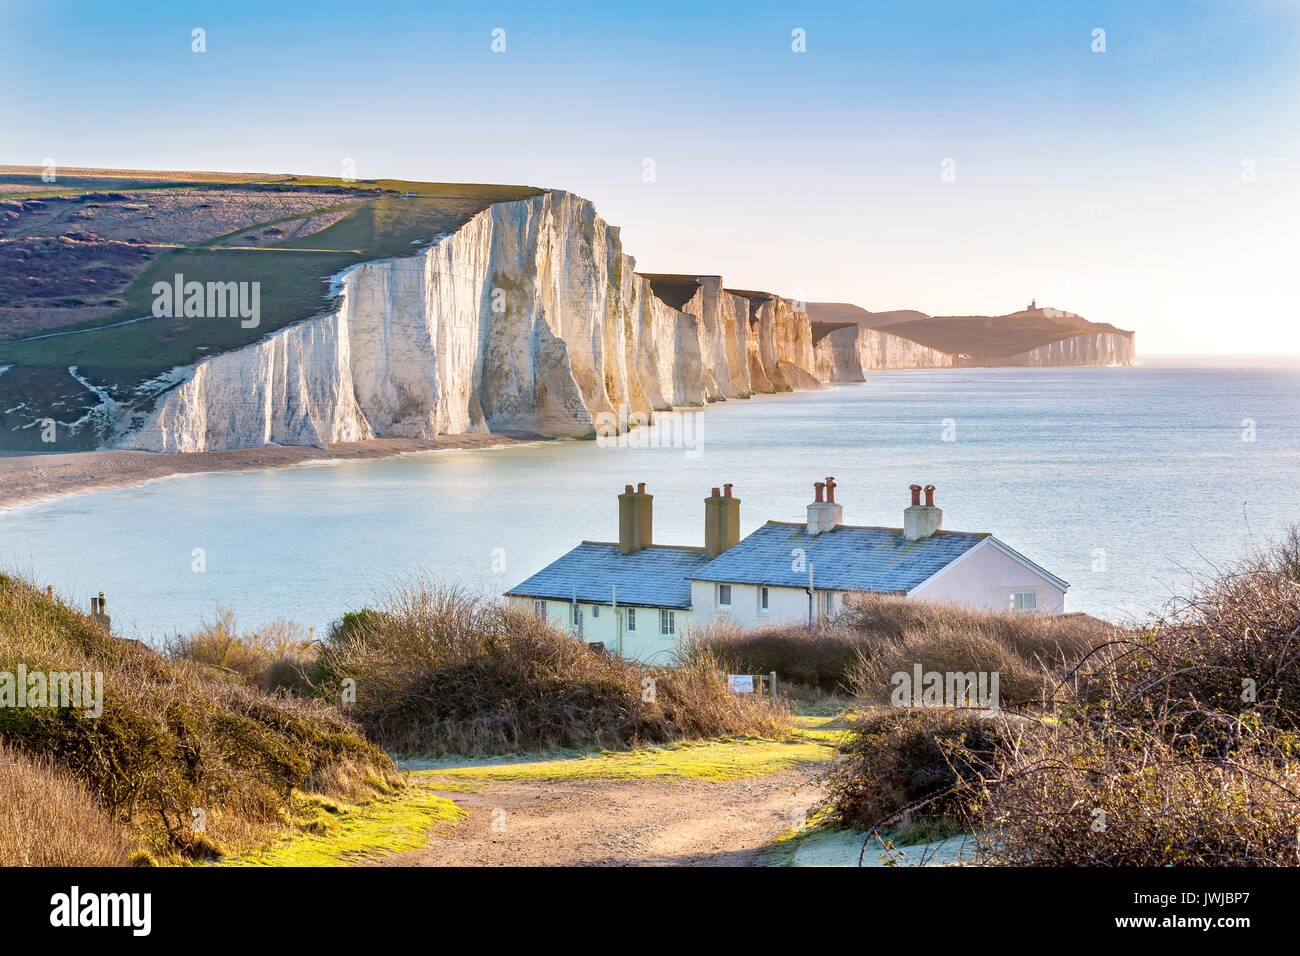 Il Coast Guard Cottages & Sette sorelle Chalk Cliffs appena fuori Eastbourne, Sussex, Inghilterra, Regno Unito. Immagini Stock